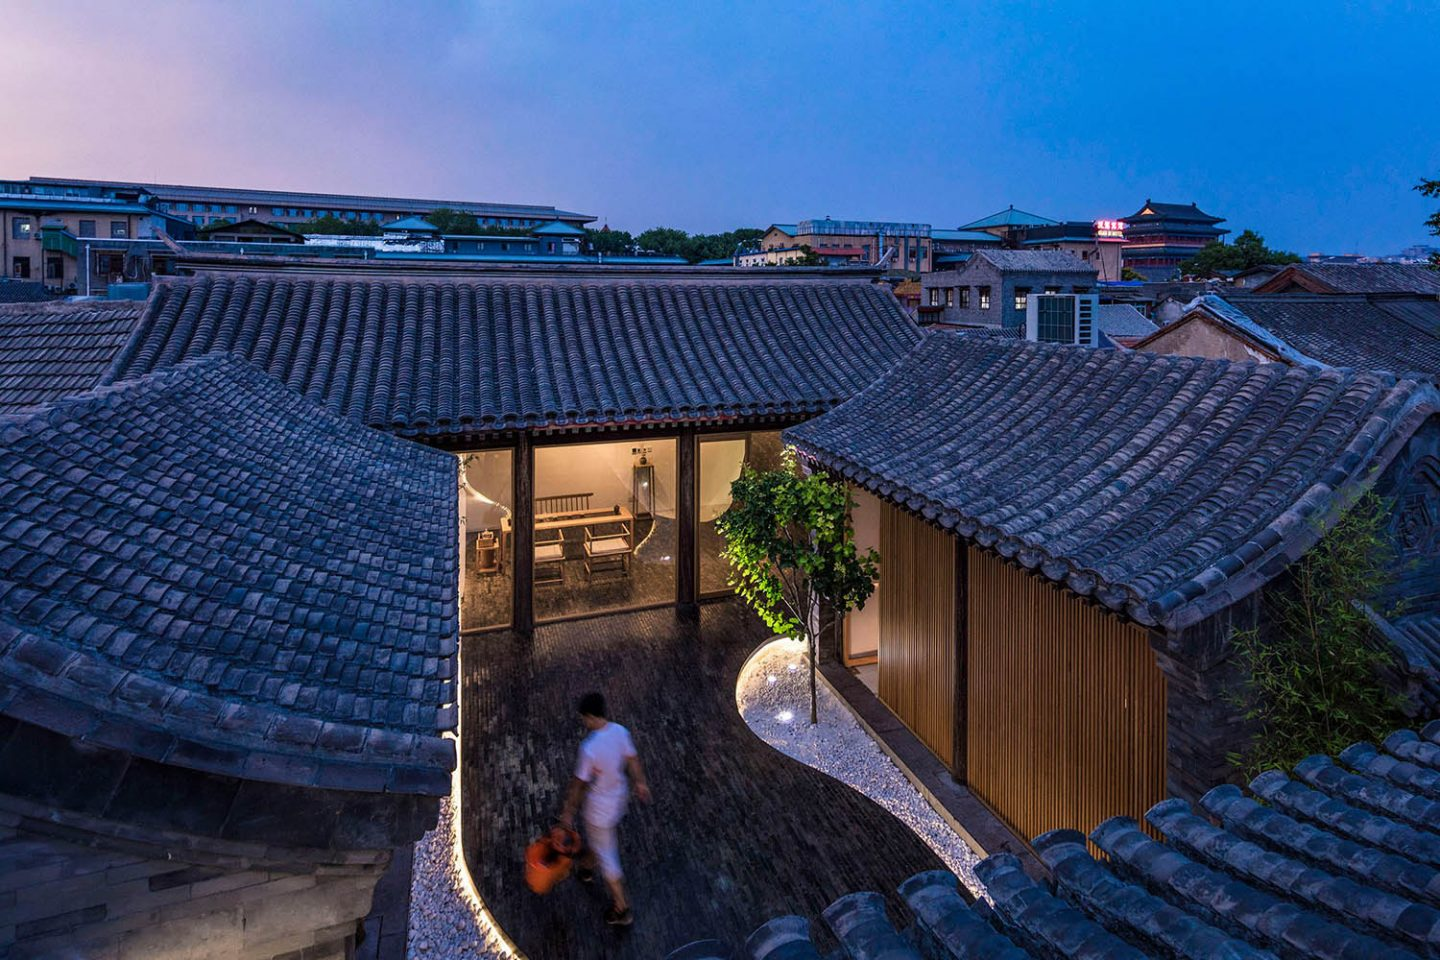 iGNANT_Architecture_Arch_Studio_Twisting_Courtyard_Beijing10